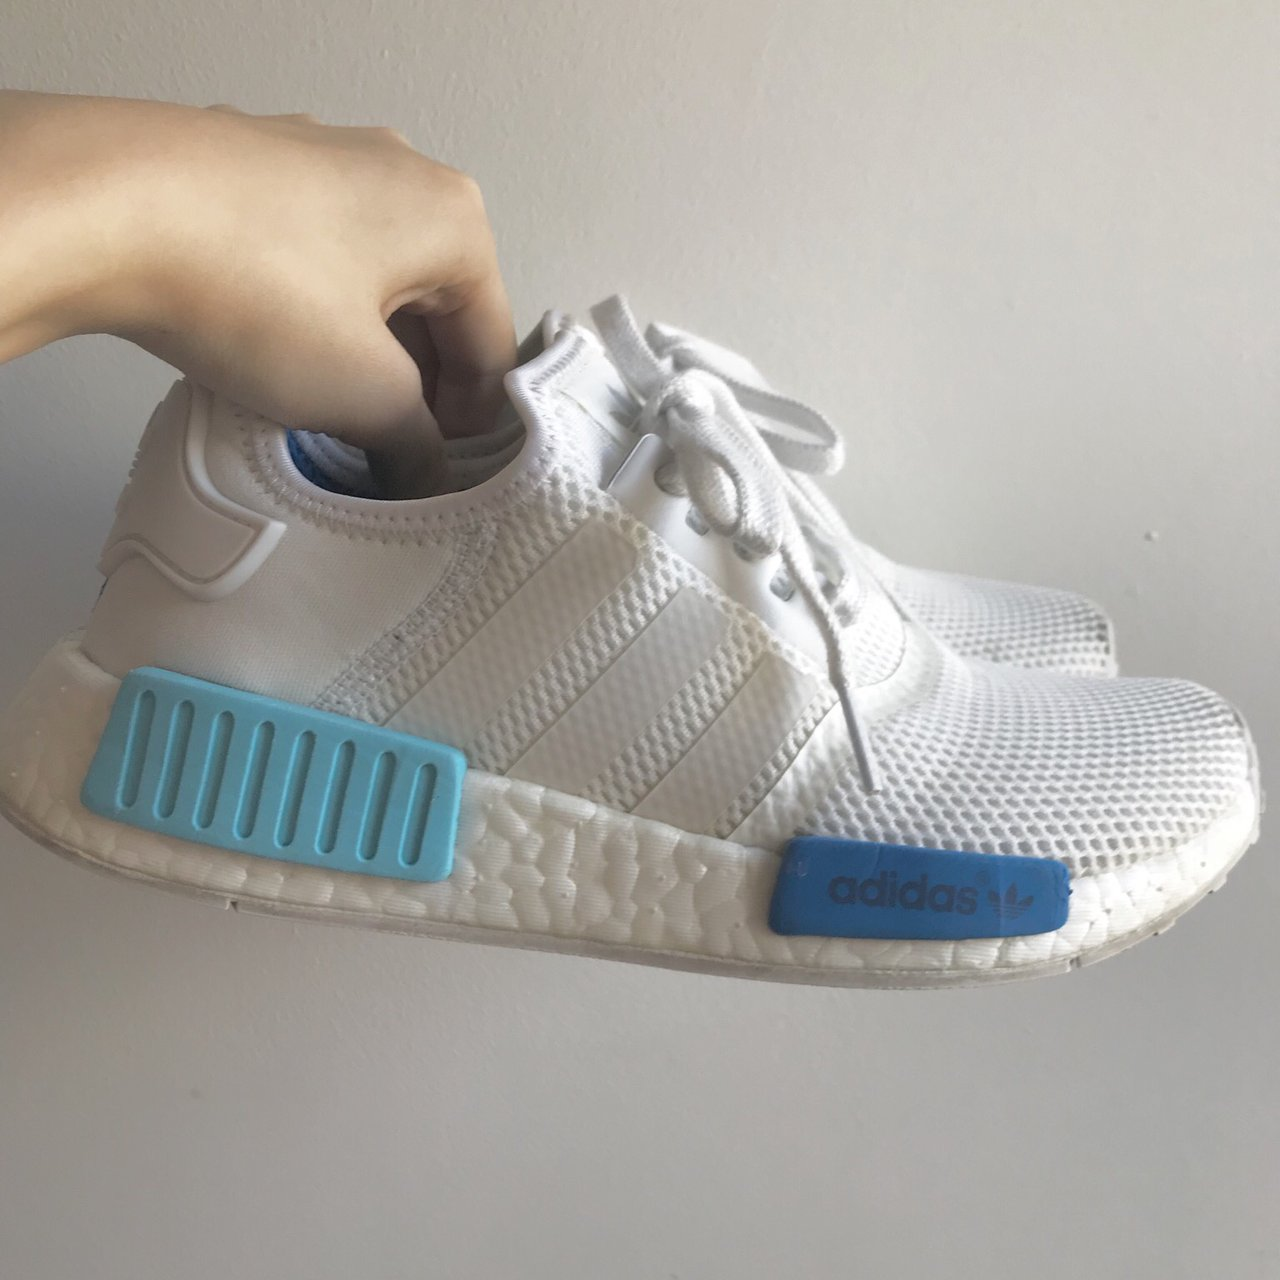 best website 5a430 ab52e Adidas nmd R1 original white sky blue. UK size 4.5. 100% are - Depop